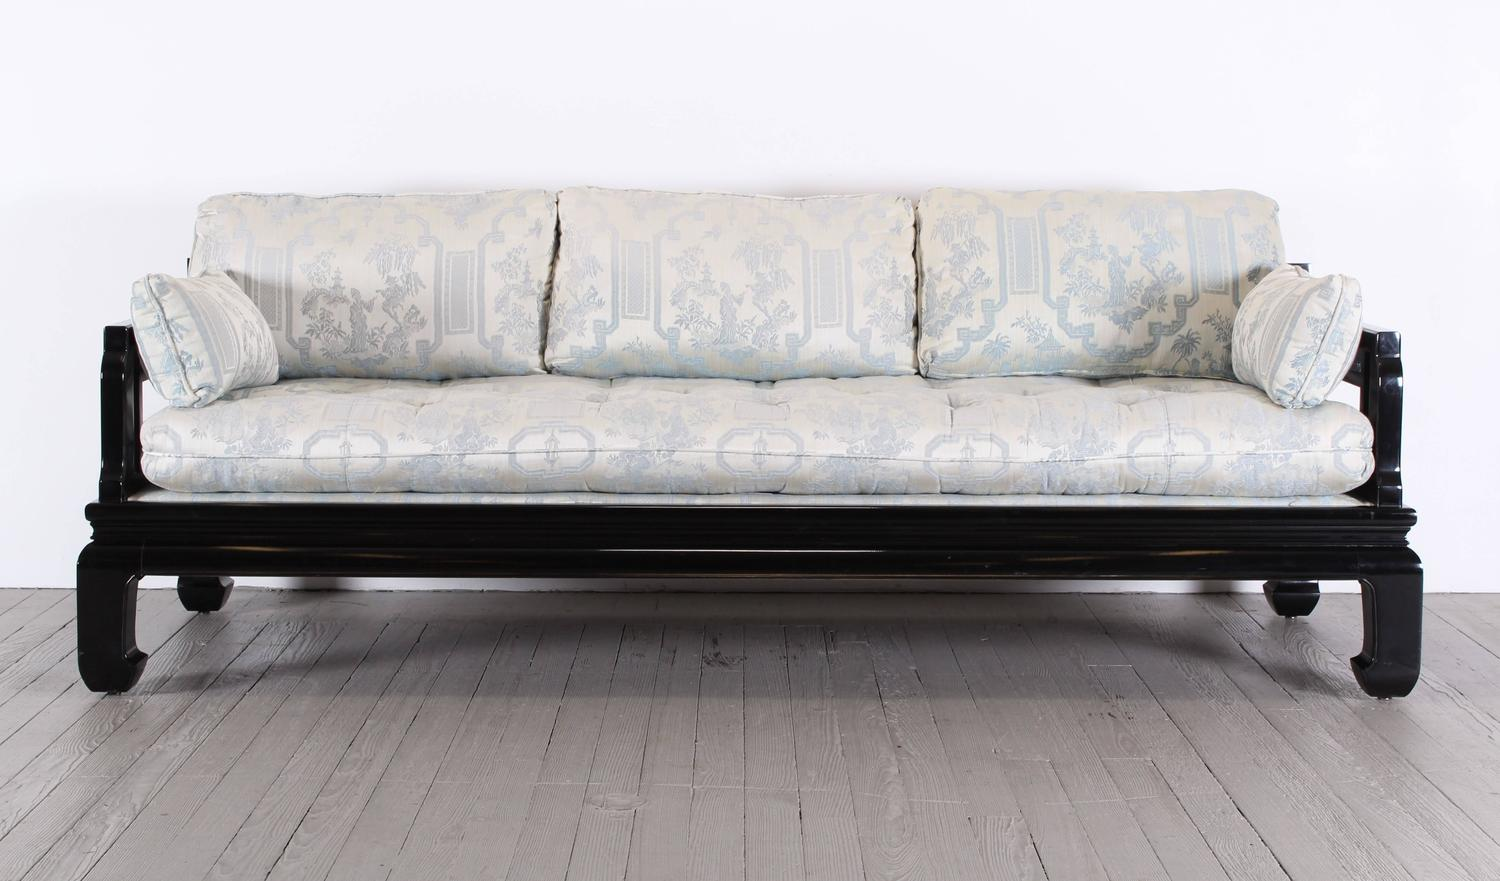 michael taylor style sofa for century 1970 at 1stdibs. Black Bedroom Furniture Sets. Home Design Ideas